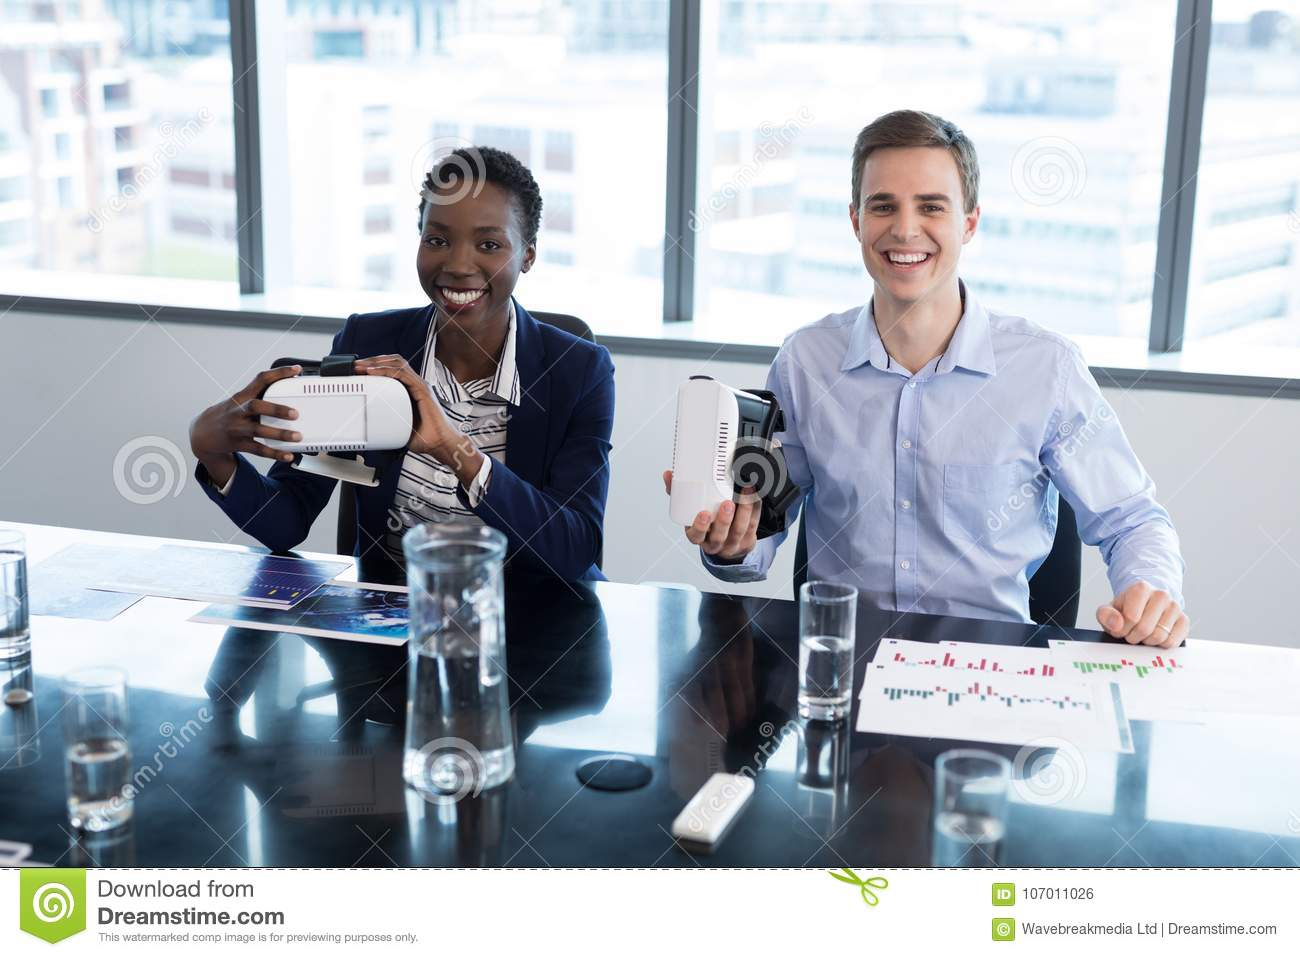 Portrait of smiling executives holding virtual reality headset